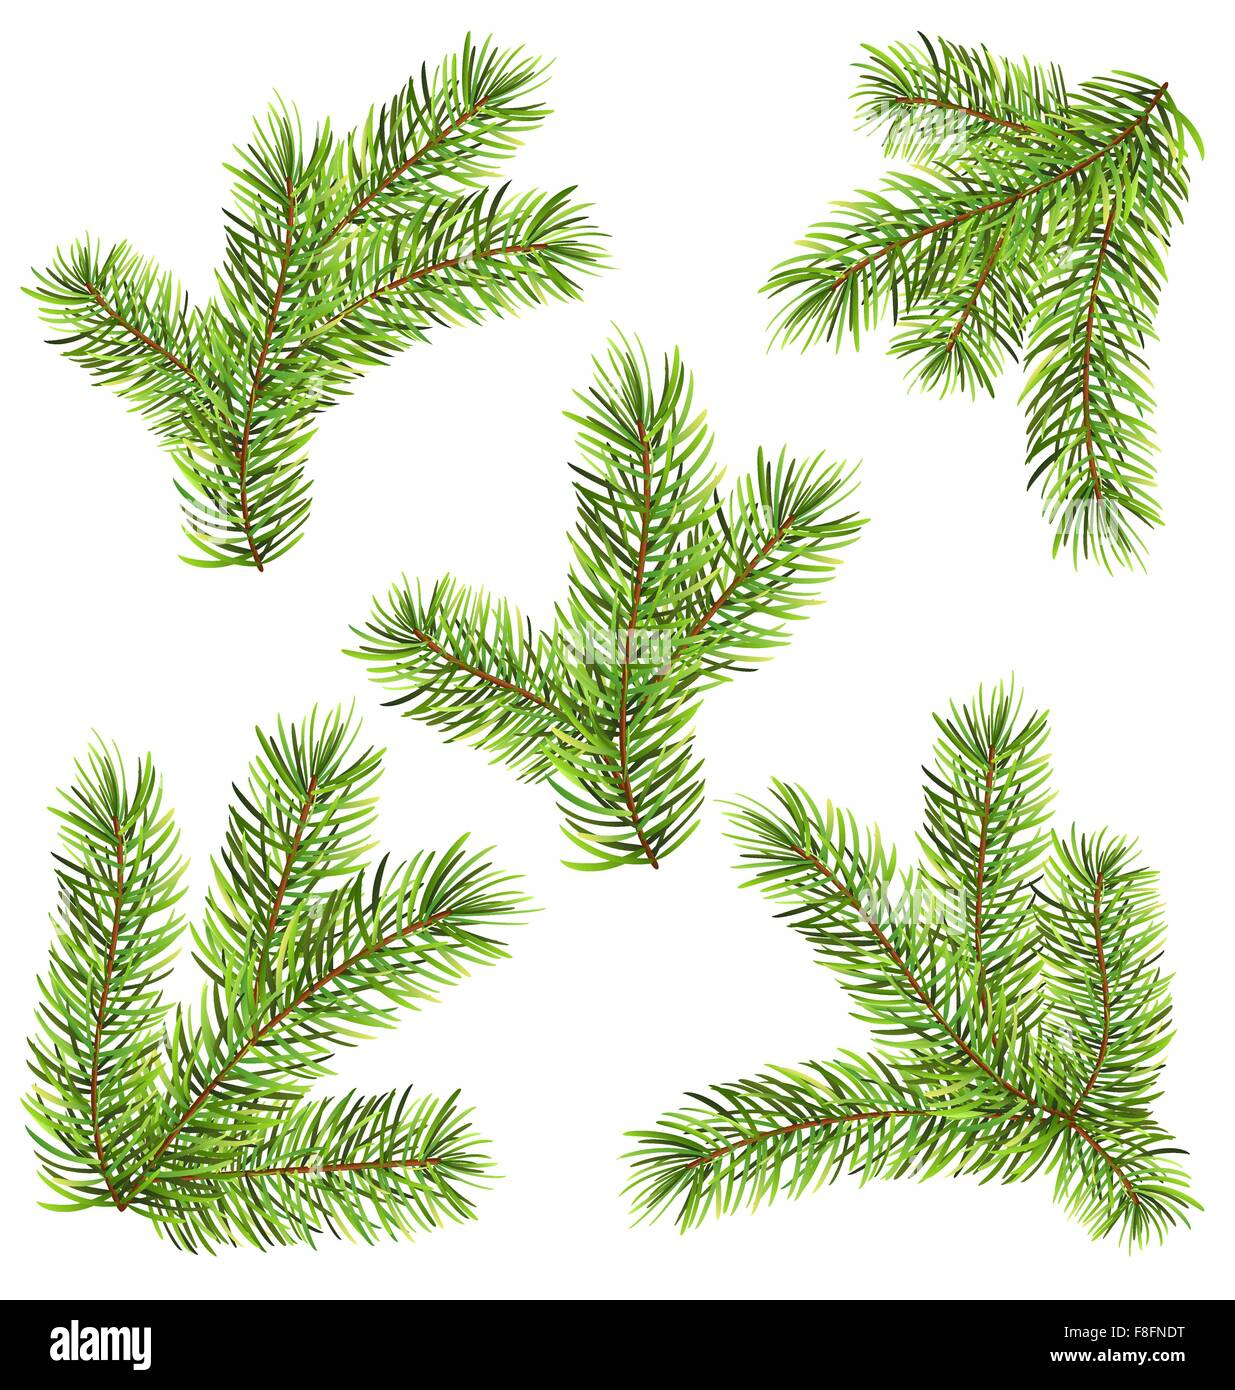 Spruces Branches Isolated on White Background - Stock Vector